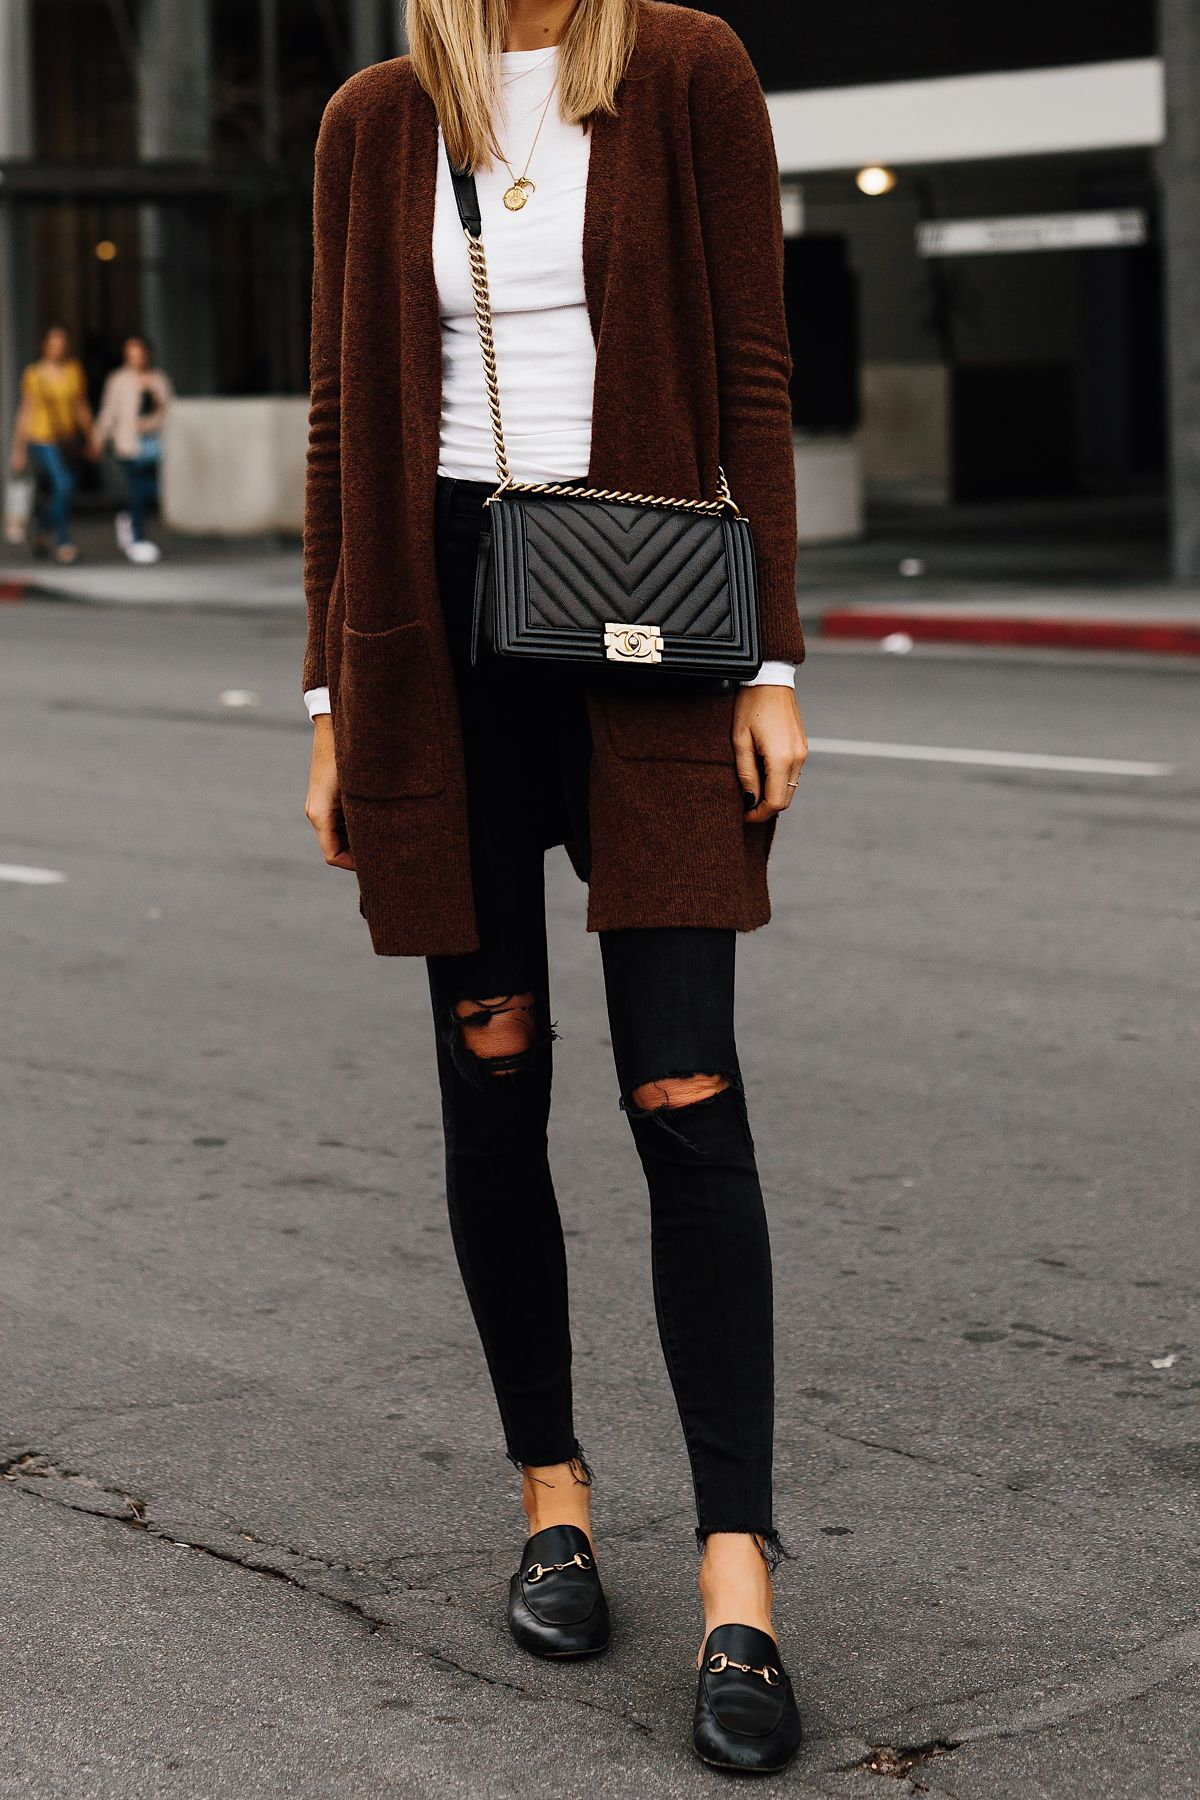 19039c4a09c2 Woman Wearing Madewell Brown Long Cardigan White Top Madewell Black Ripped  Skinny Jeans Gucci Black Princetown Loafer Mules Chanel Black Boy Bag  Fashion ...